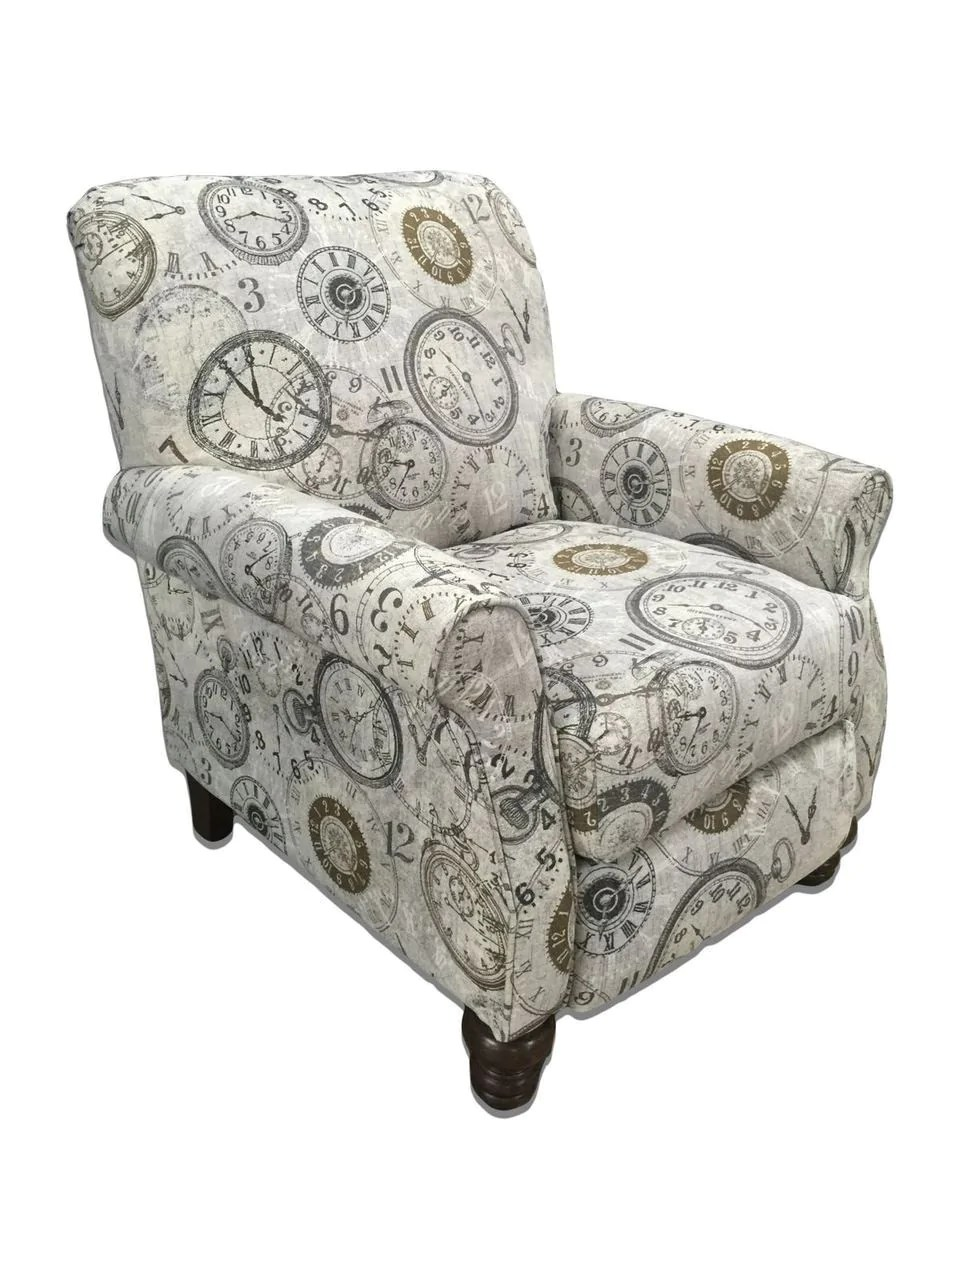 Timeless Patina Clockwork Accent Recliner By Serta Upholstery My Furniture Place